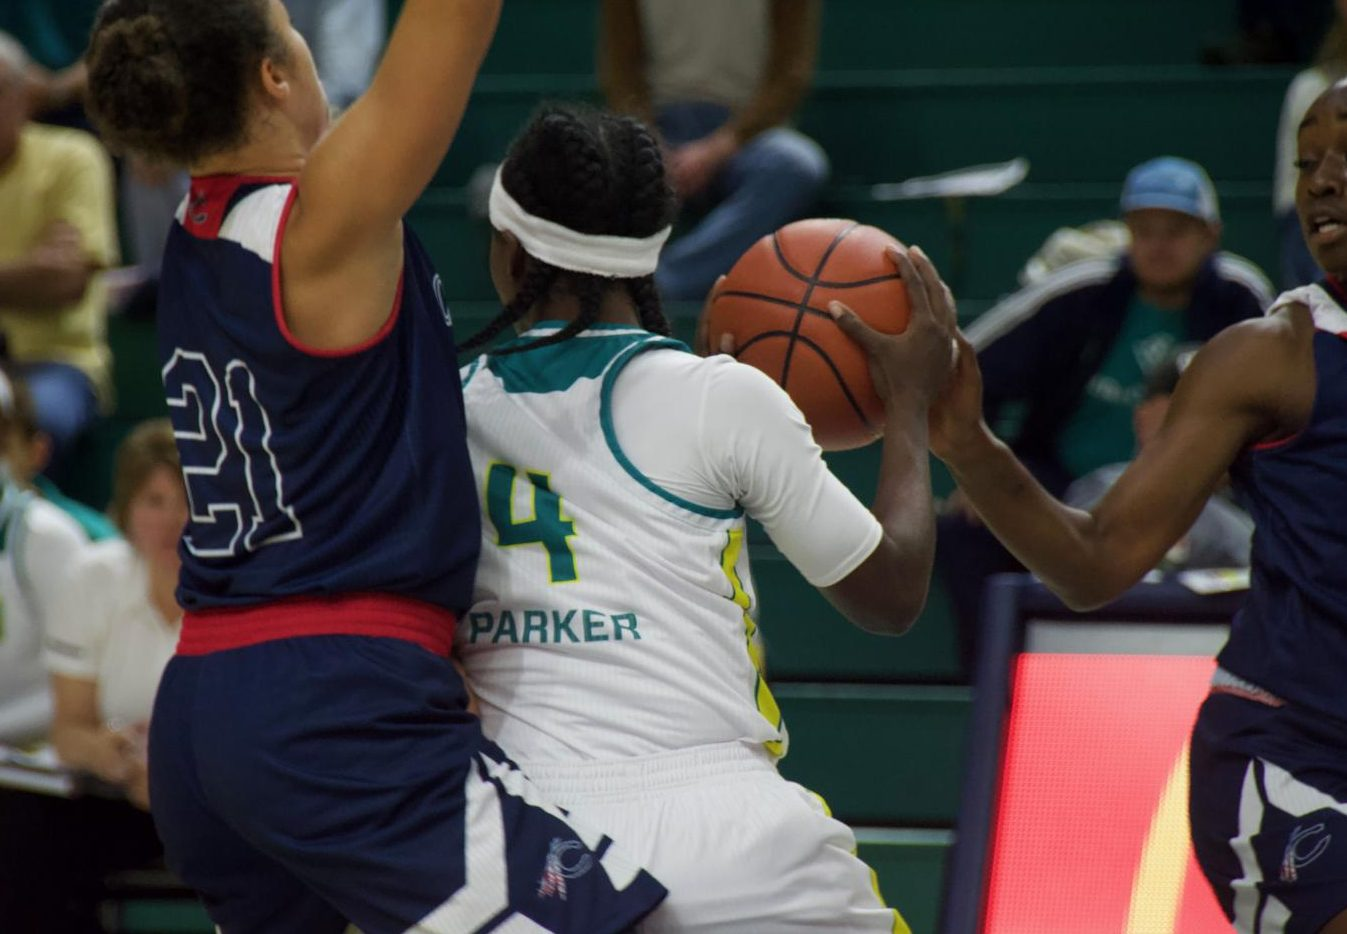 Shrita Parker (4) gets double-teamed by defenders during UNCW's exhibition against Catawba on Oct. 27, 2018.